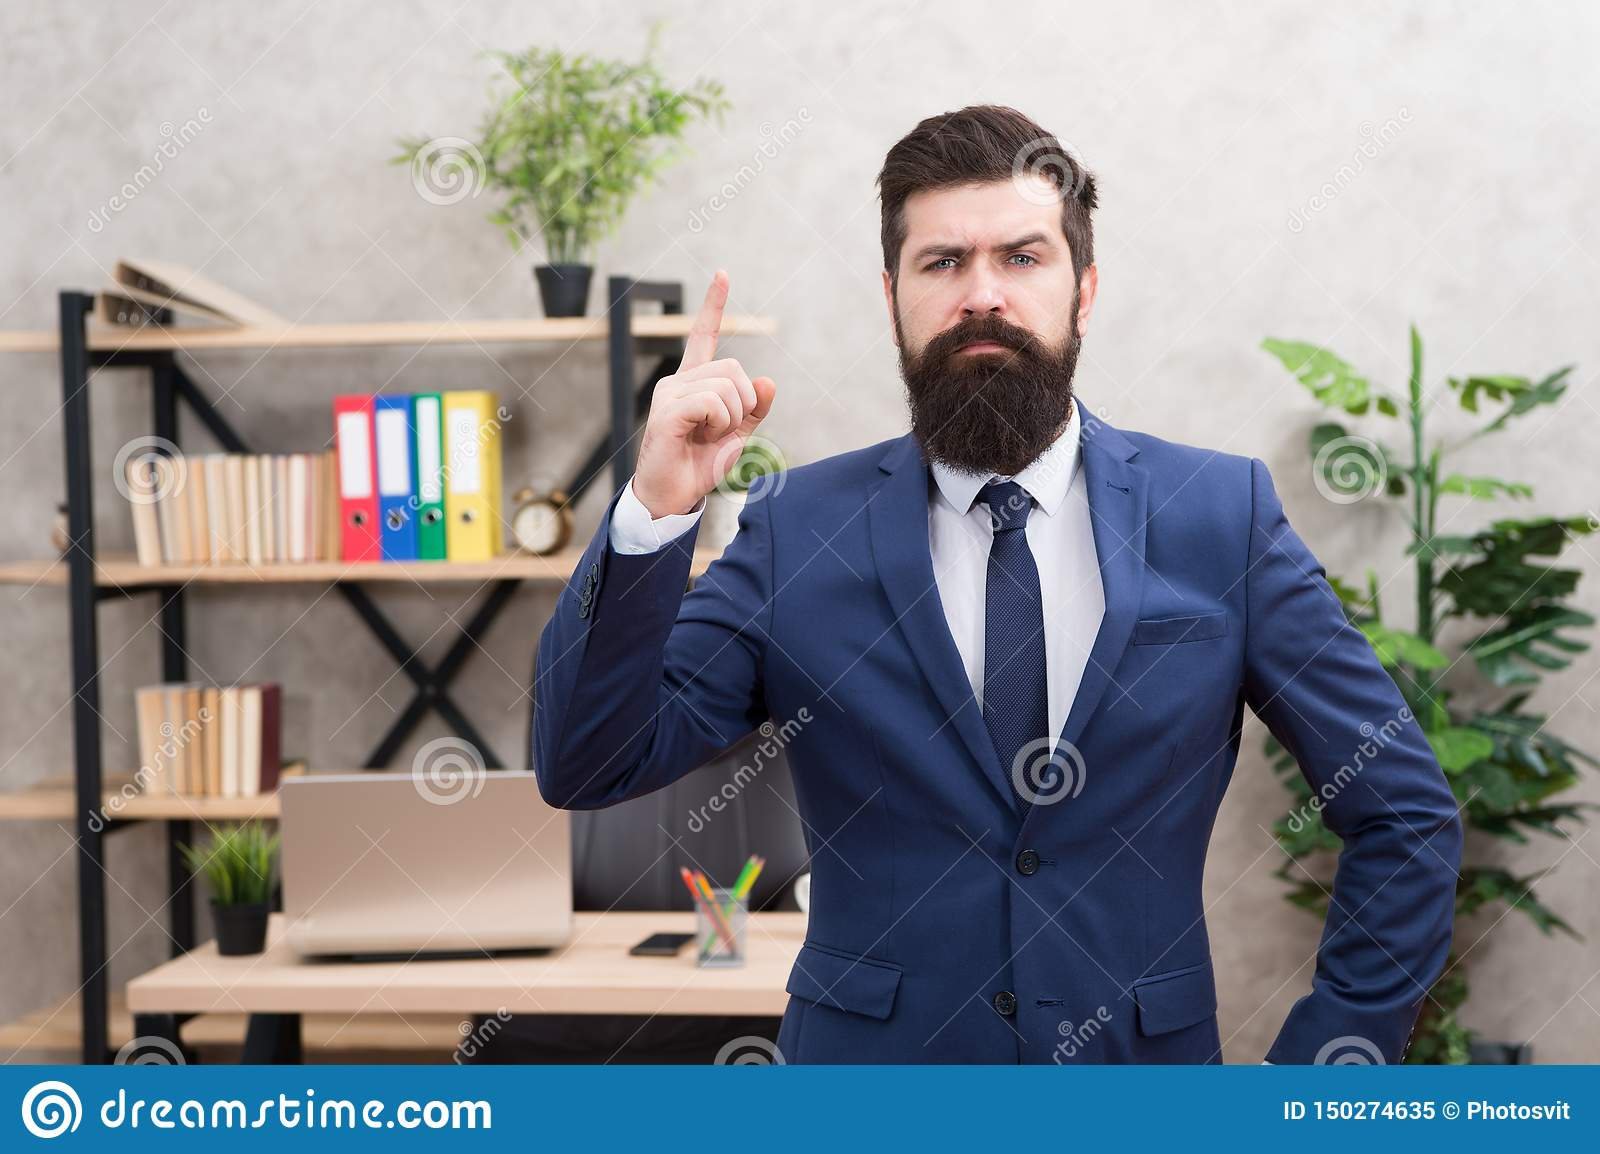 Recruitment department. Job interview. Welcome team member. Recruiter professional occupation. HR manager. Man bearded